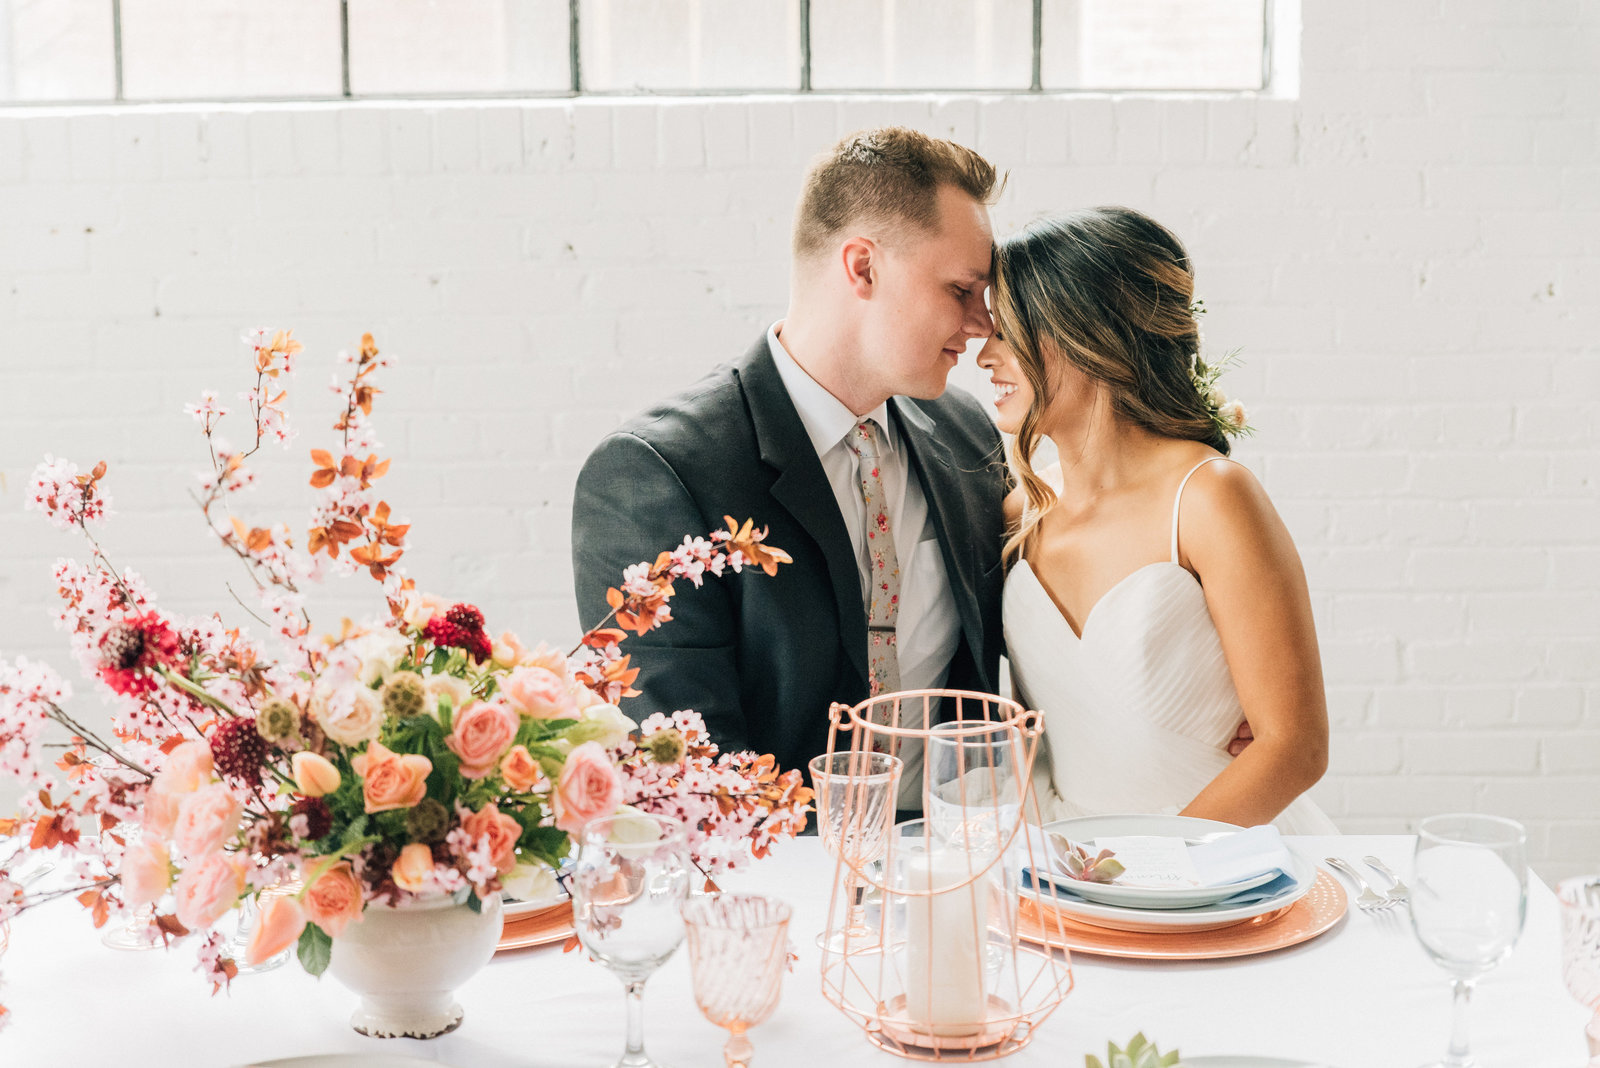 spring+styled+wedding+inspiration  204